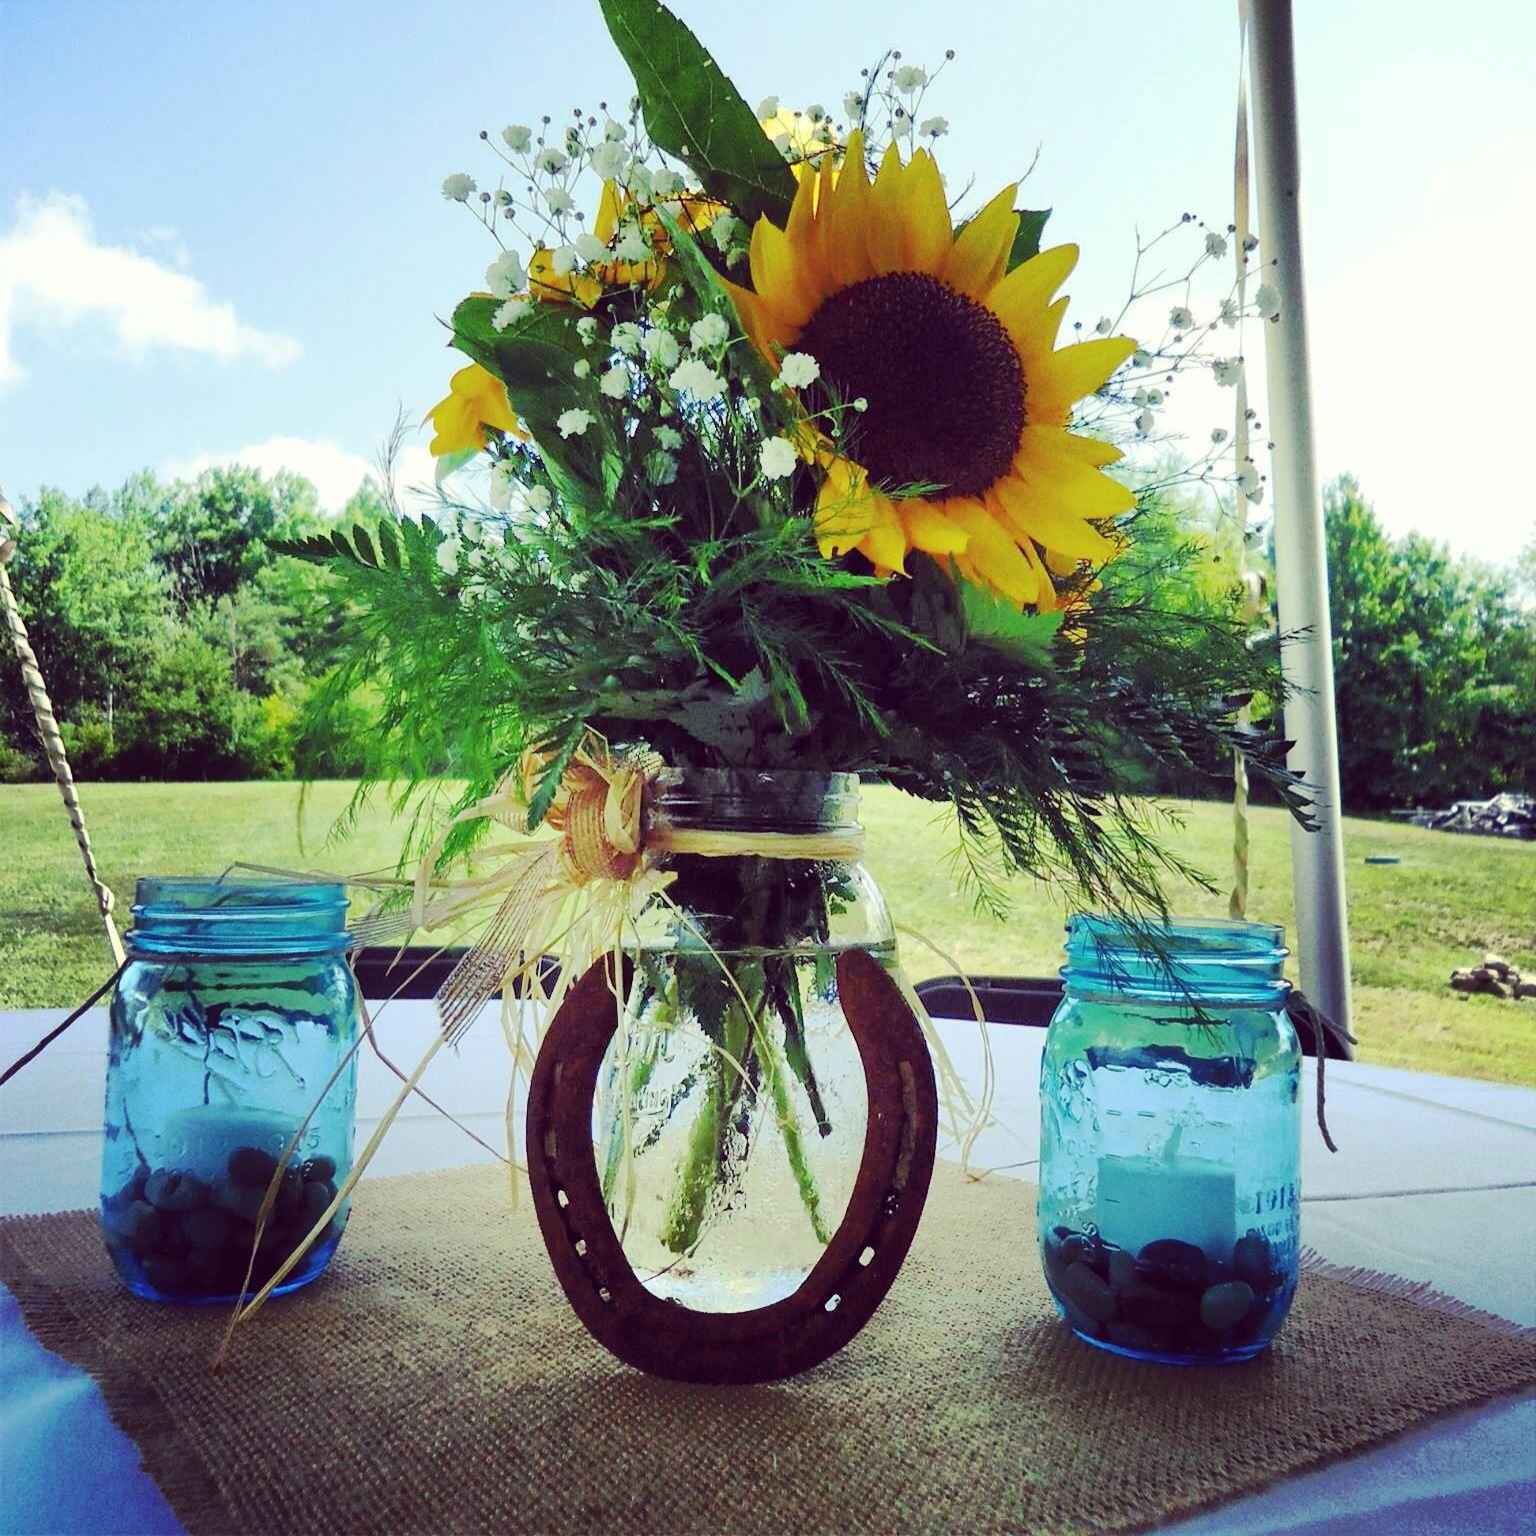 Cowgirl Wedding Ideas: Country Reception With Sunflowers, Horse Shoes, And Mason